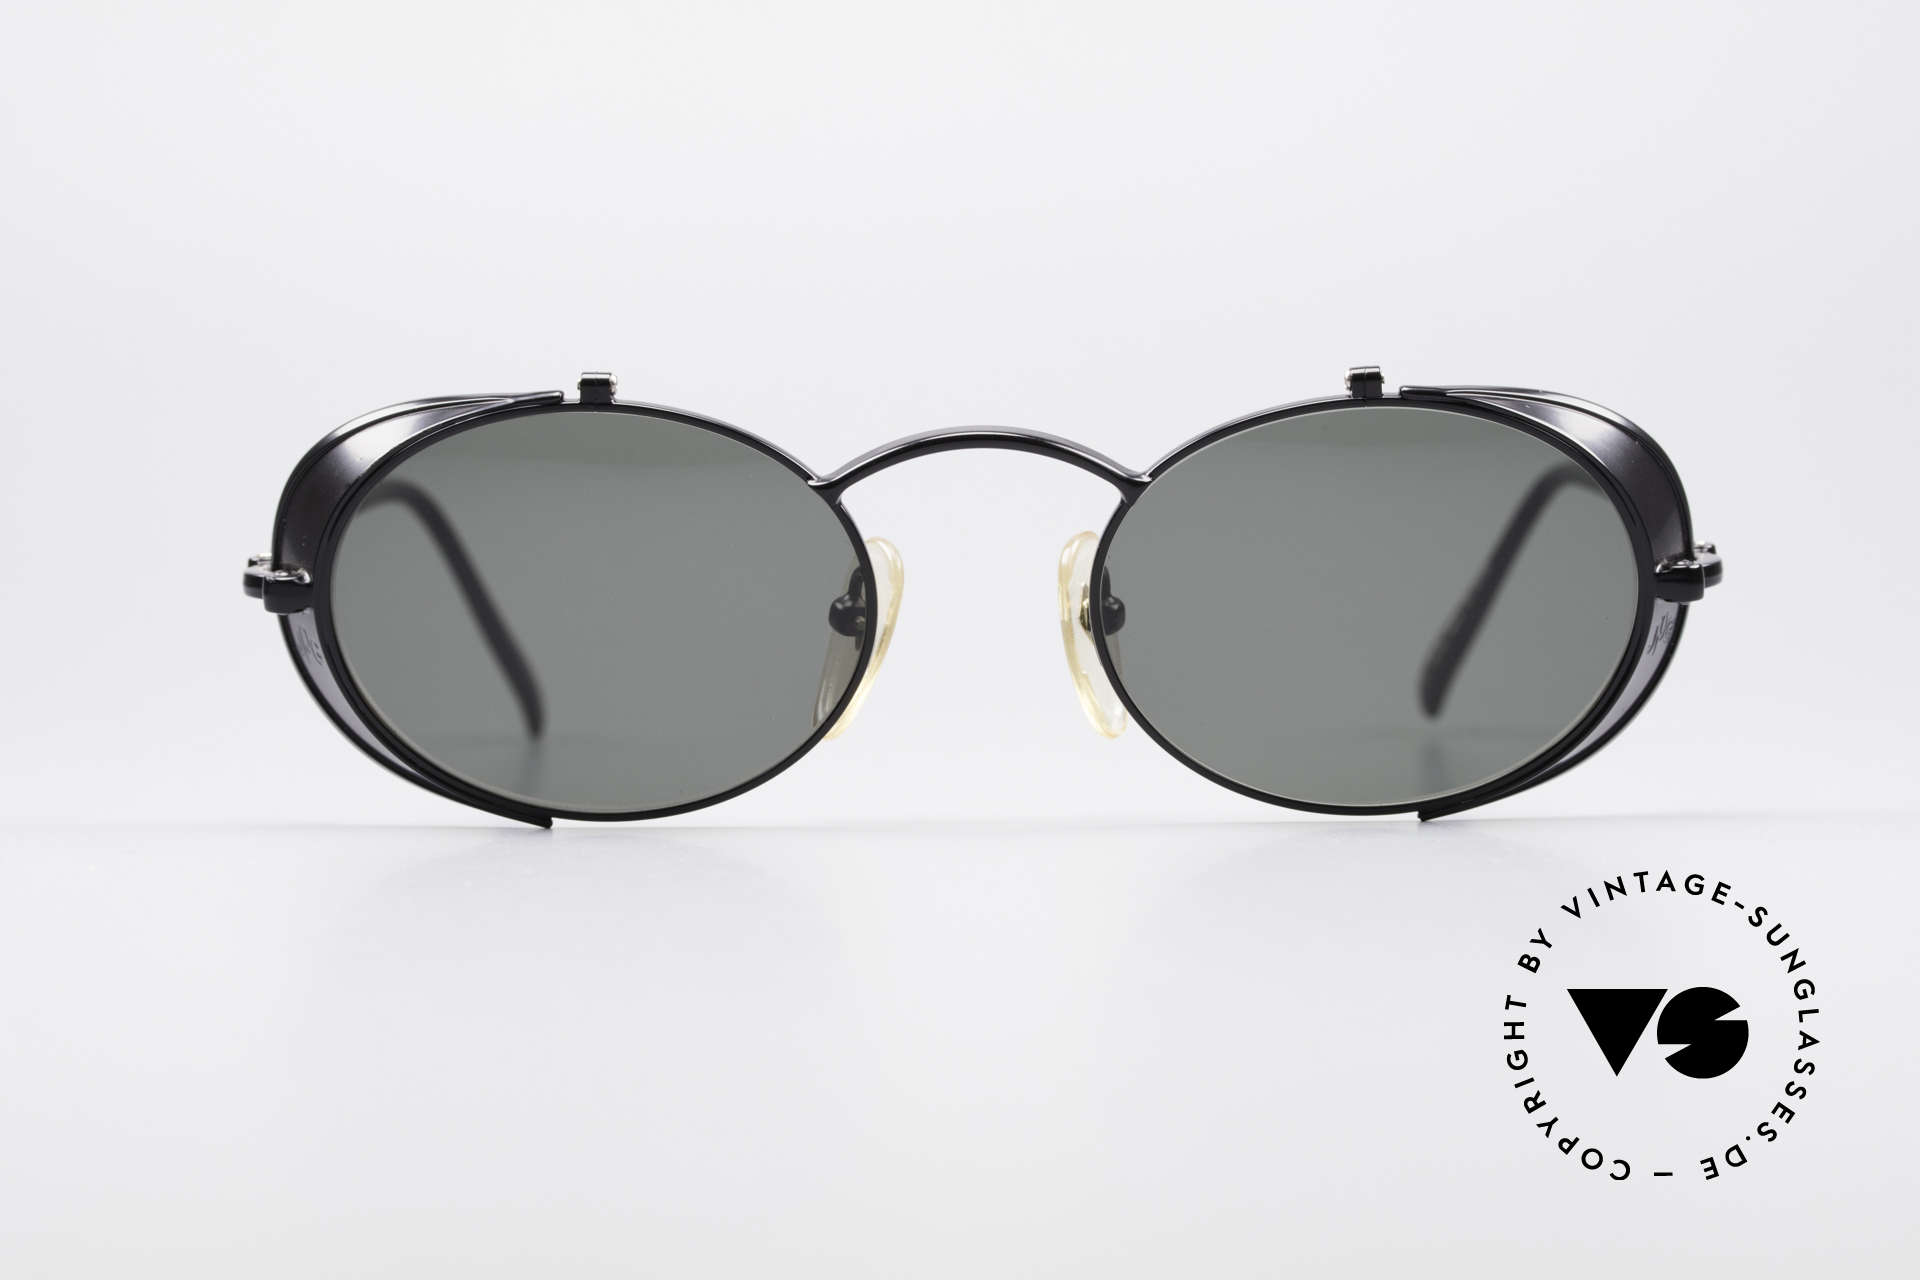 Jean Paul Gaultier 56-1175 JPG Side Shields Sunglasses, 'STEAMPUNK shades' by the eccentric French designer, Made for Men and Women